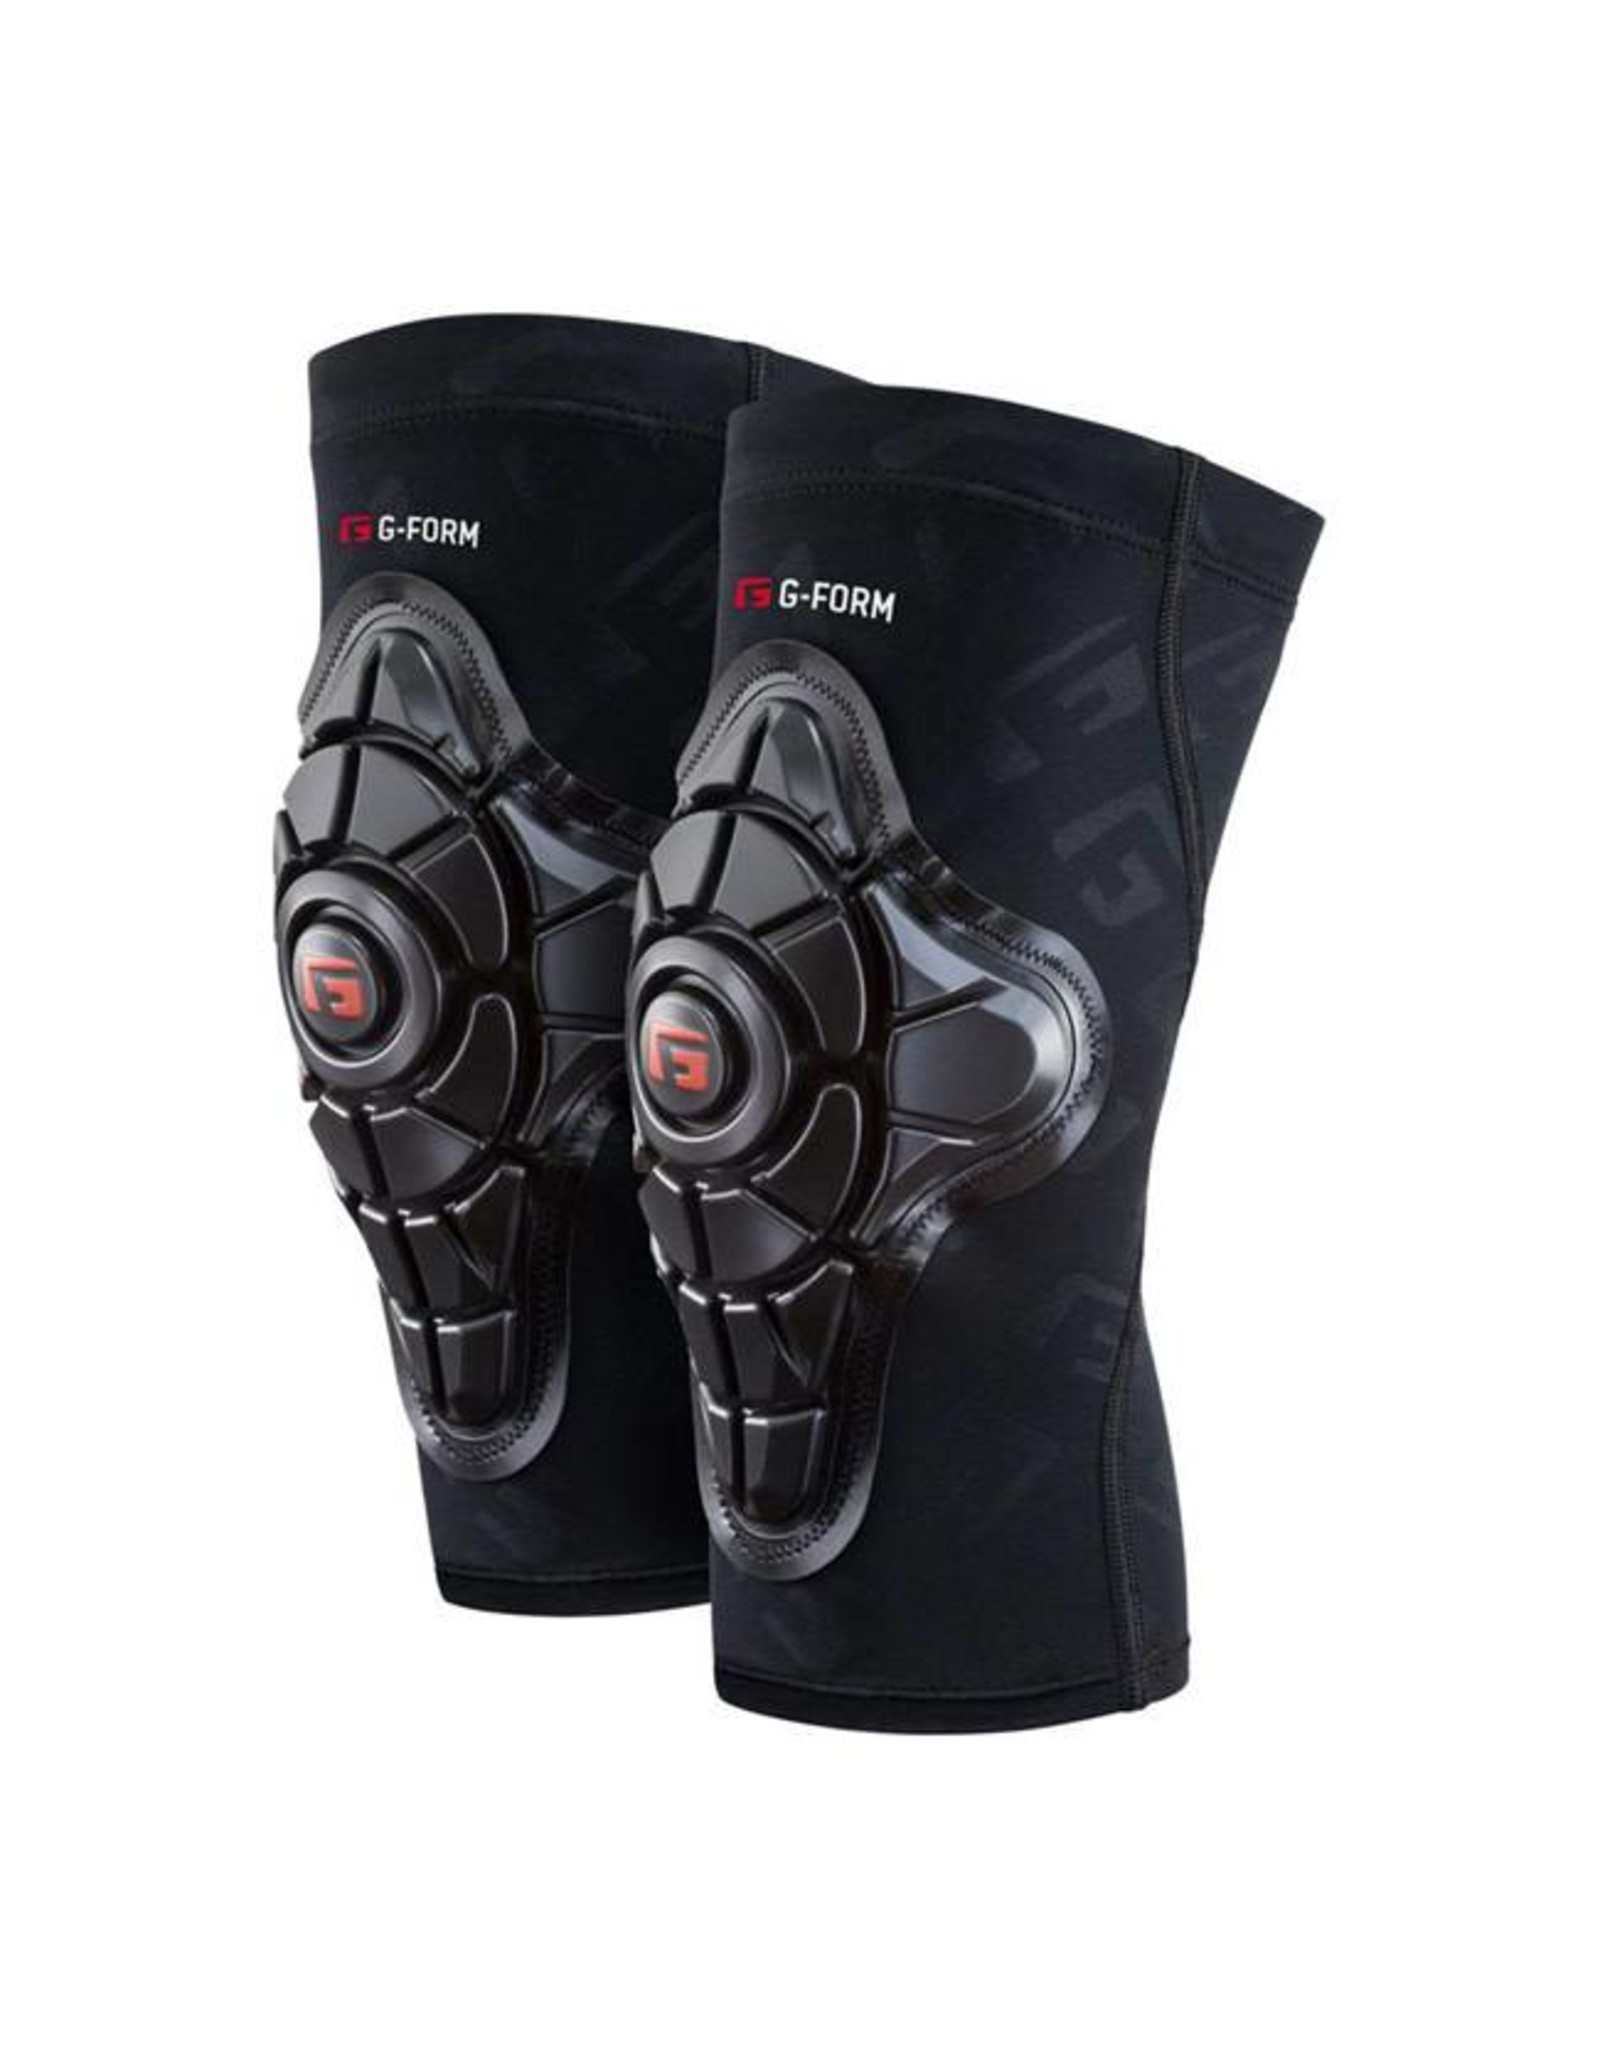 G-Form G-Form Pro-X Knee Pad: Black/Embossed G, XL